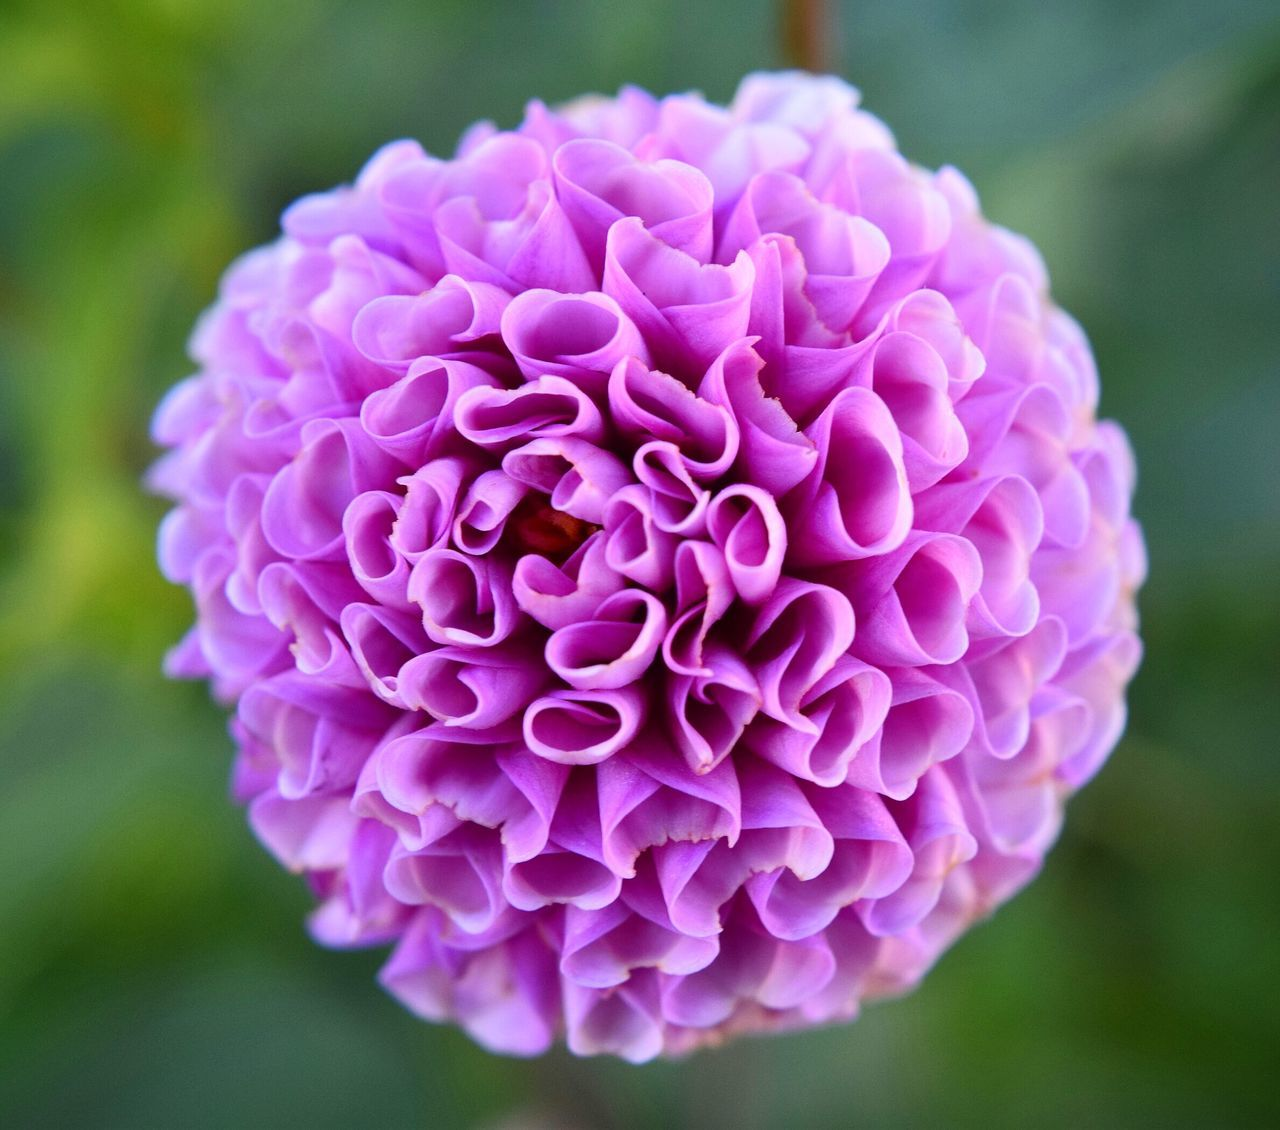 flower, beauty in nature, growth, petal, nature, fragility, focus on foreground, flower head, close-up, freshness, purple, blooming, no people, outdoors, day, plant